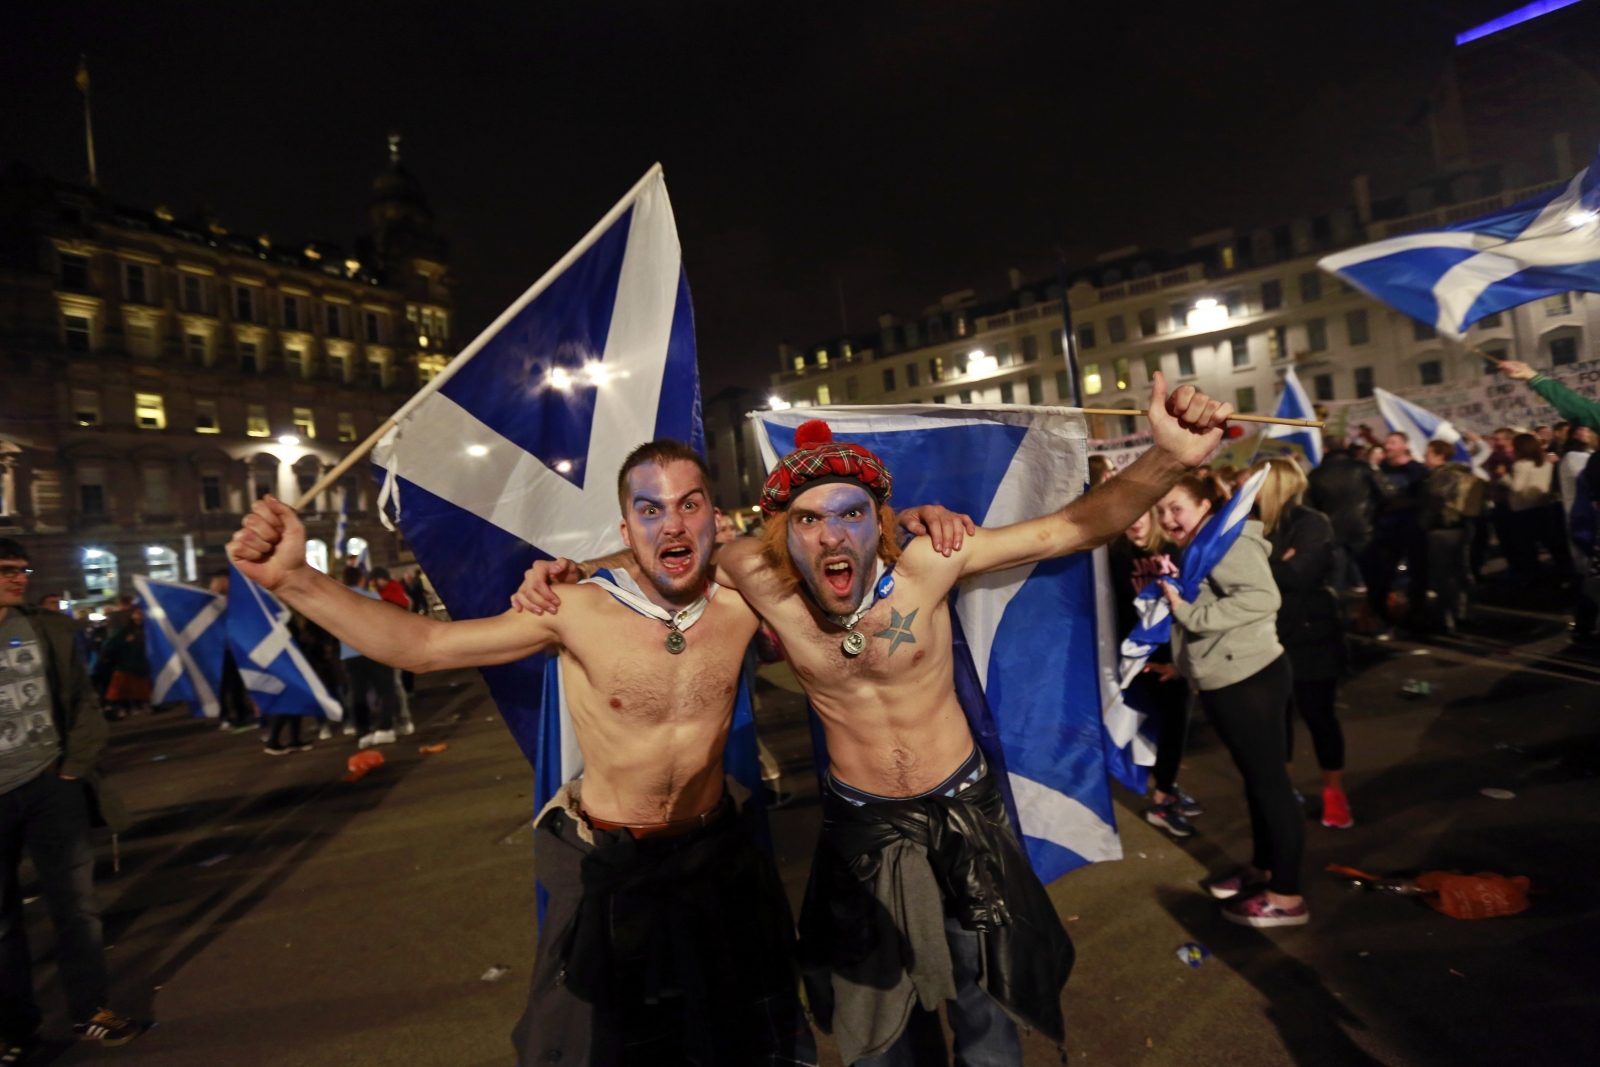 Scottish Independence Results: Why the Yes Campaign was Hugely Successful Despite Losing Referendum